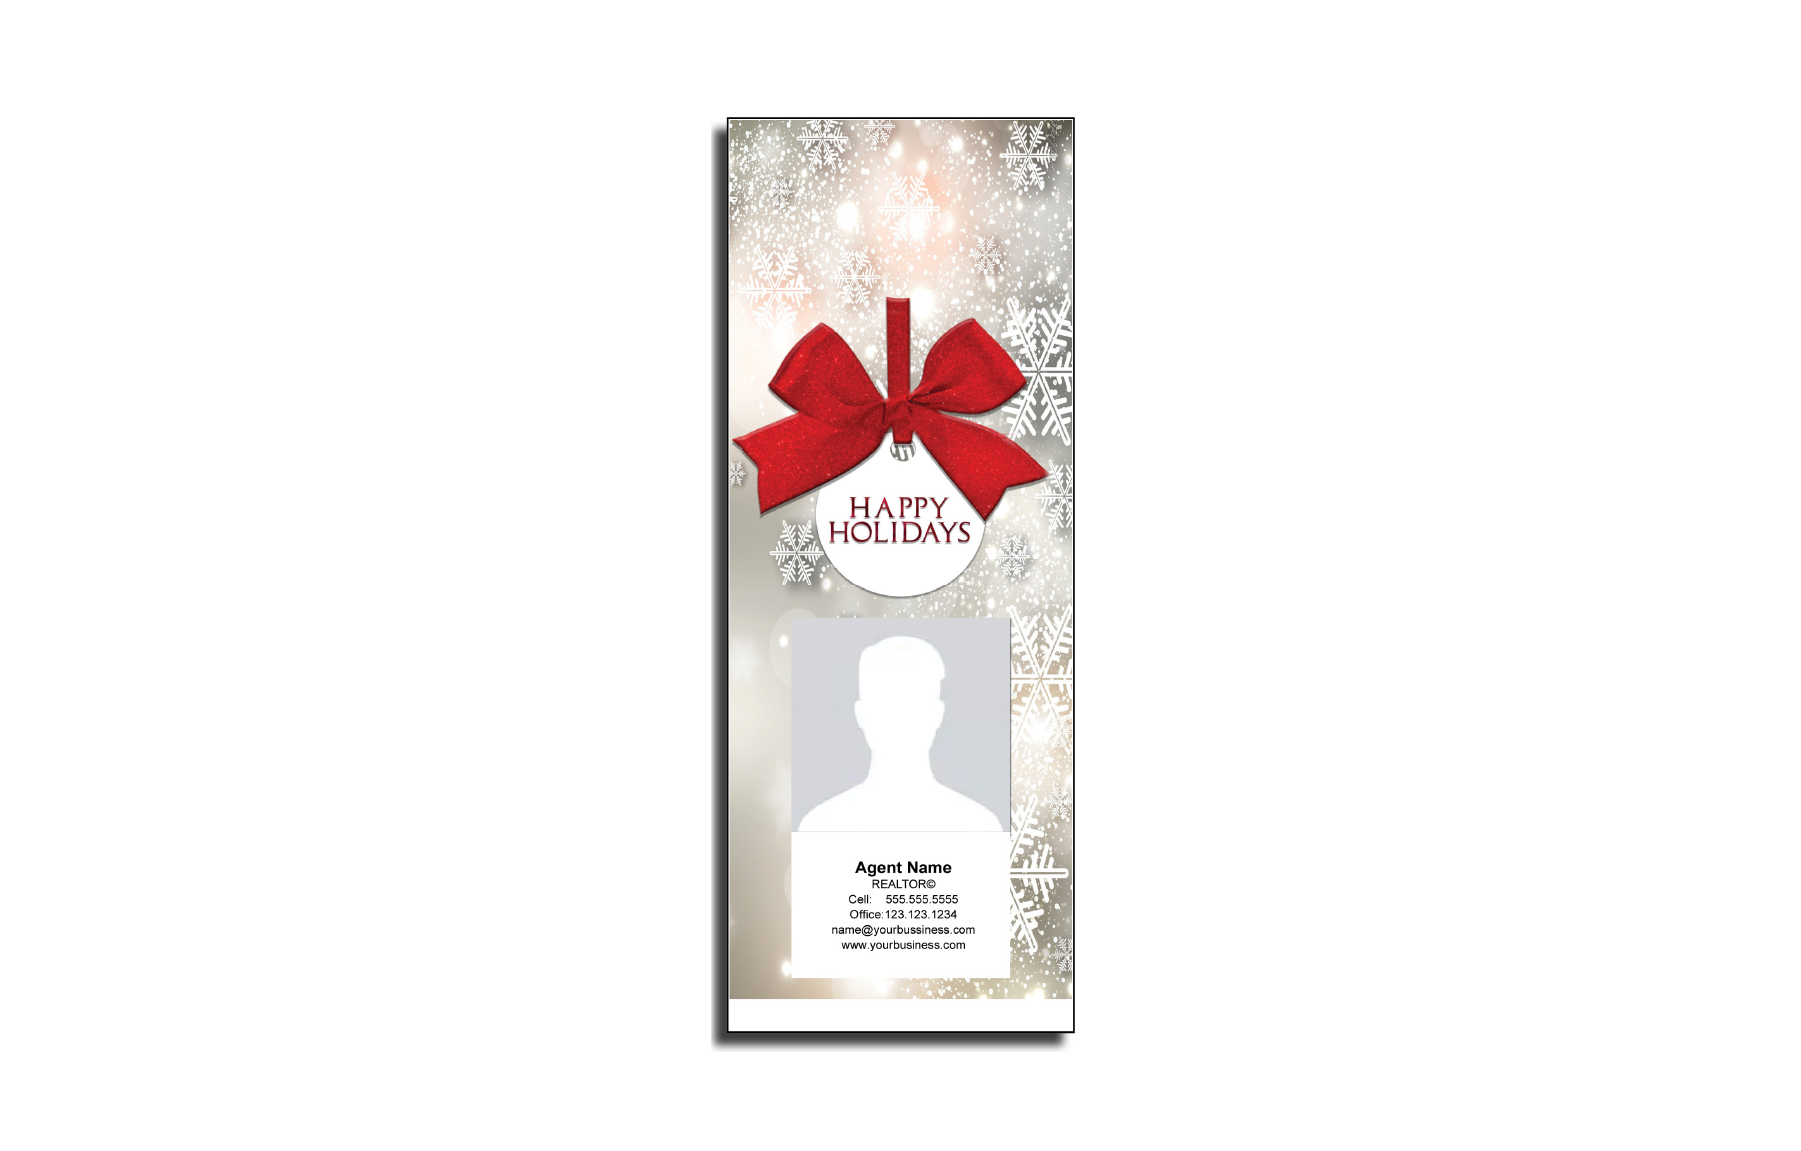 Plumb Marketing Doorhanger - Christmas 02 - 1710